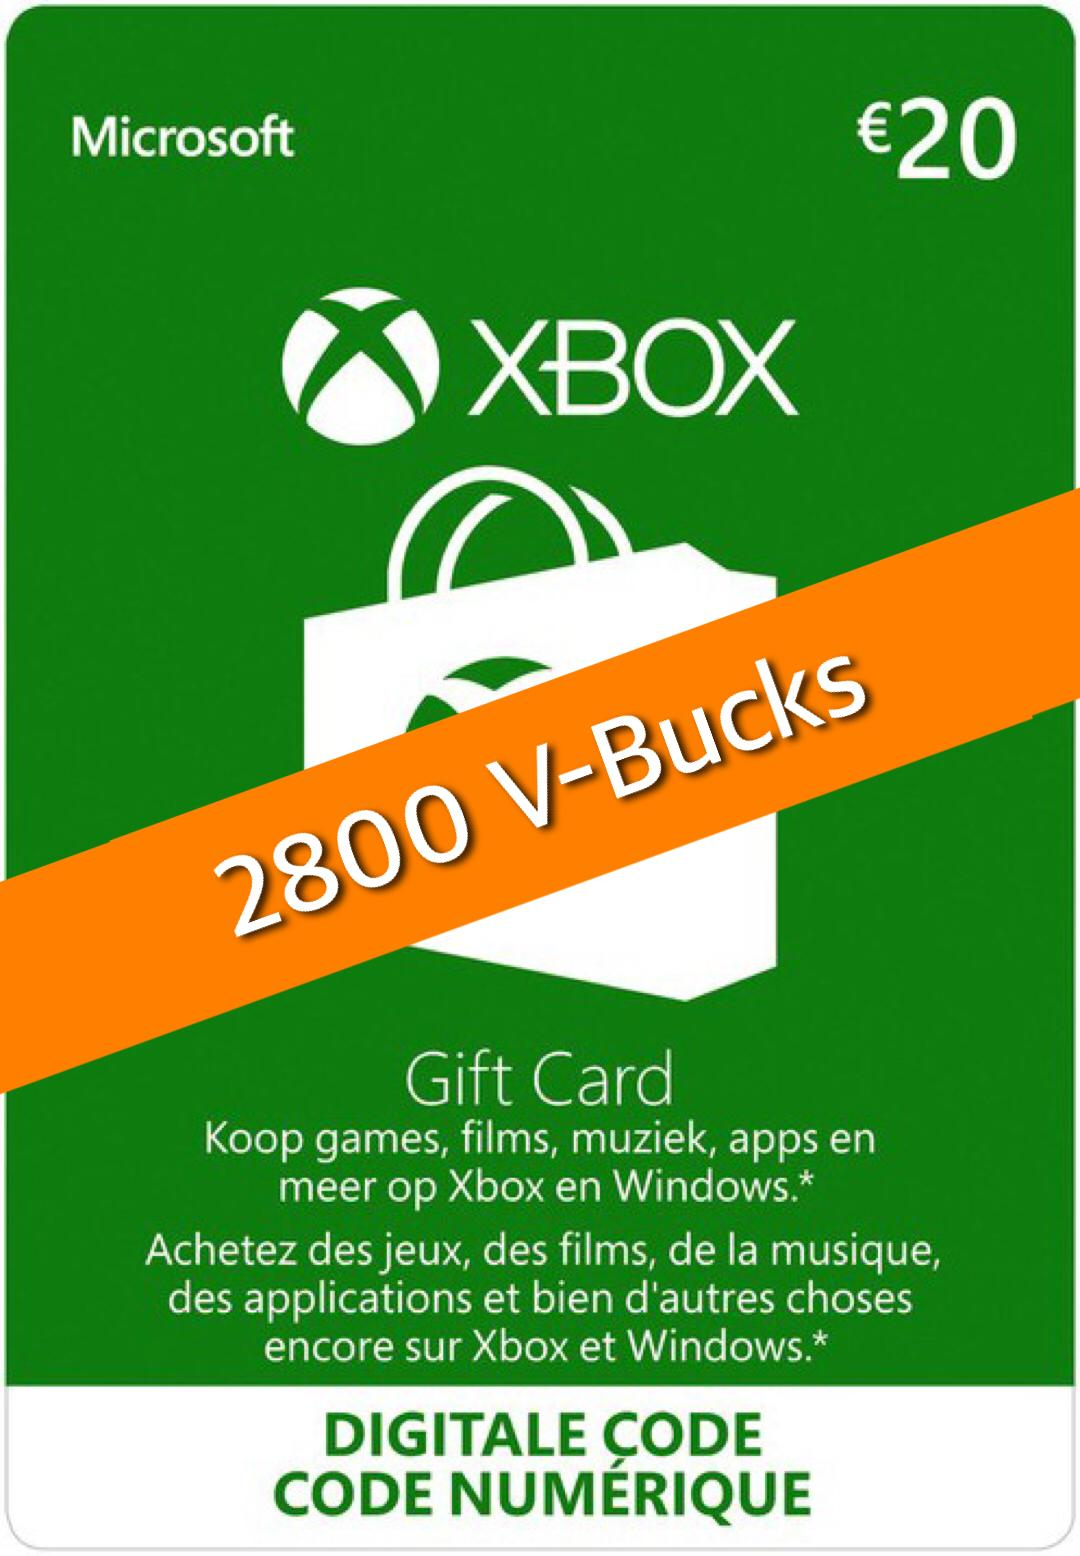 2800 Xbox Fortnite V-Bucks